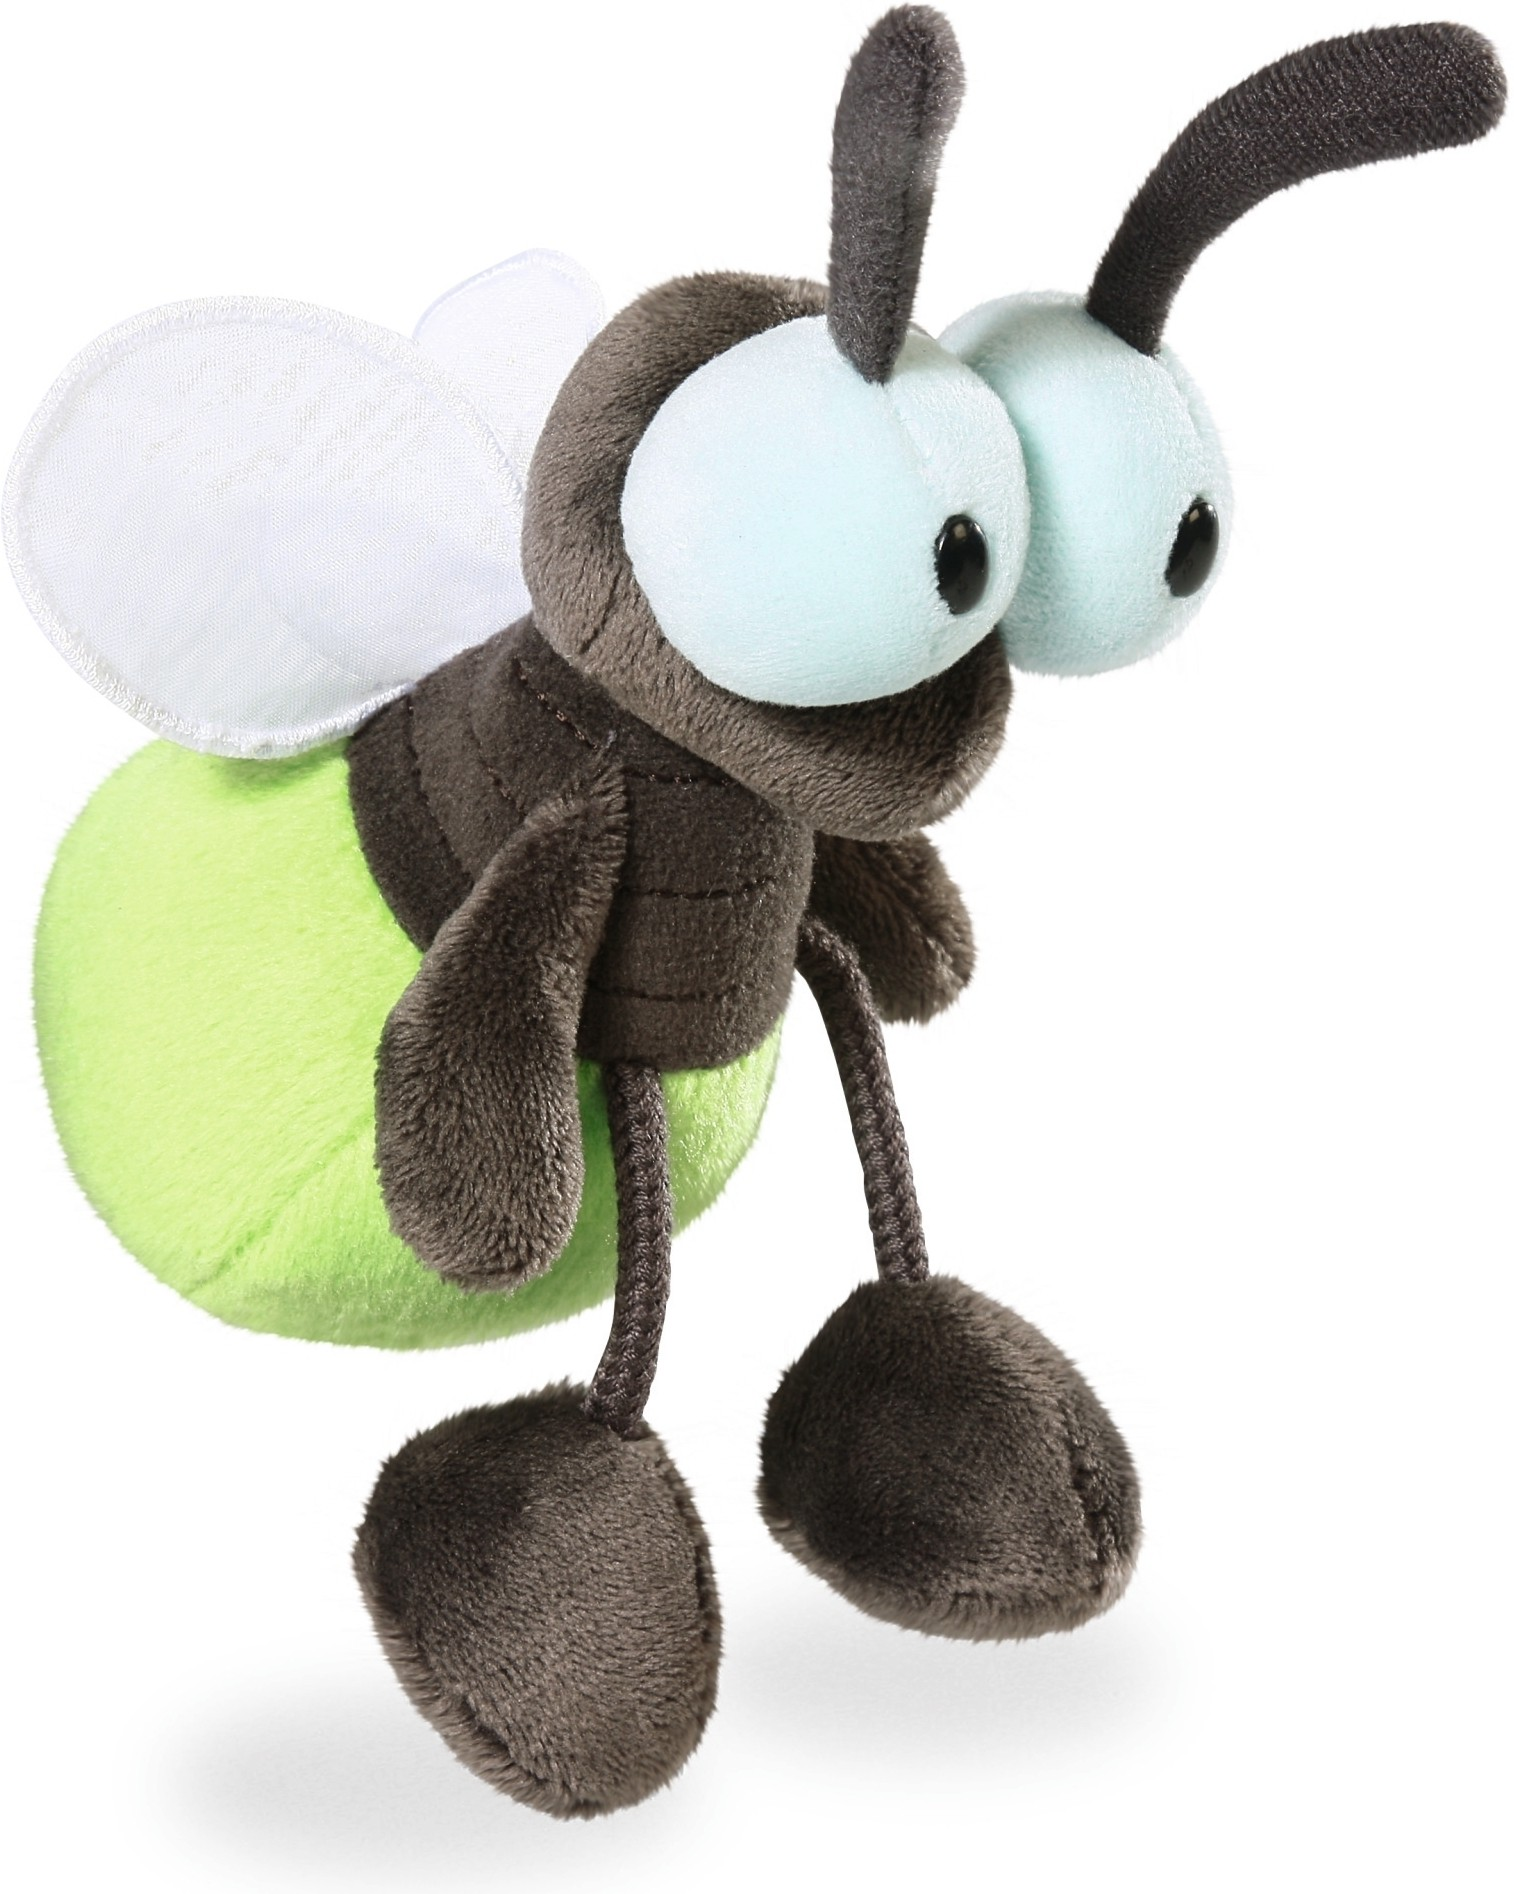 Cuddly Firefly - Fully Customisable Plush